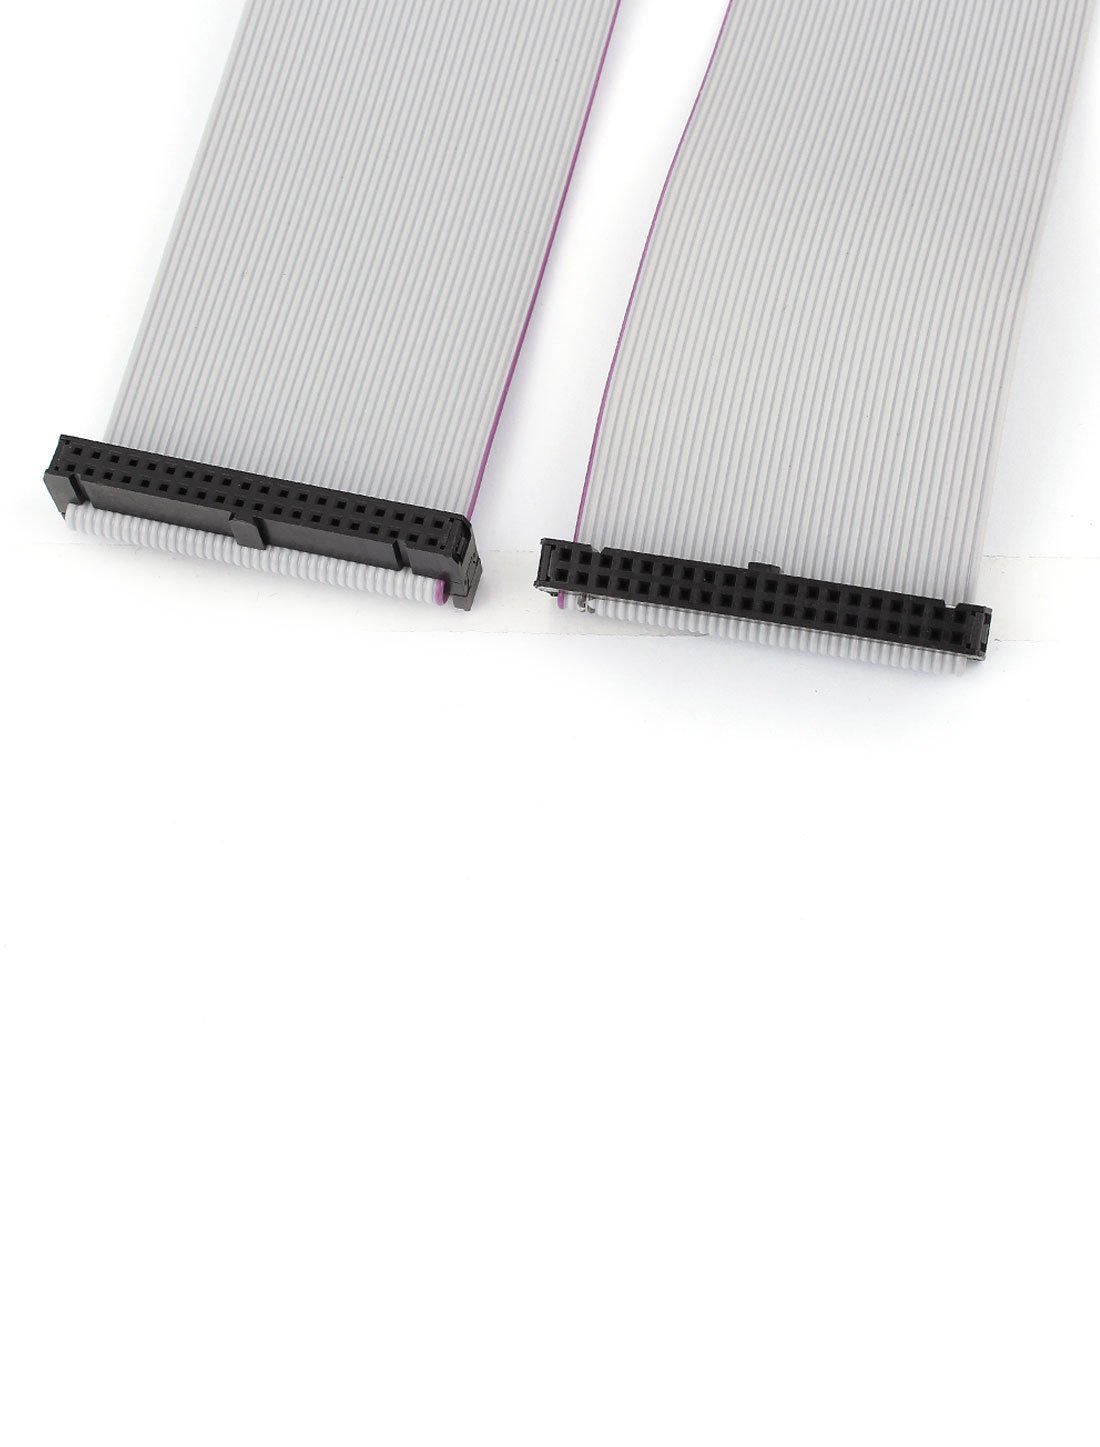 HLin 2Pcs 2.54mm Pitch 40Pin F//F IDC Connector Motherboard Flat Ribbon Cable 1M Length